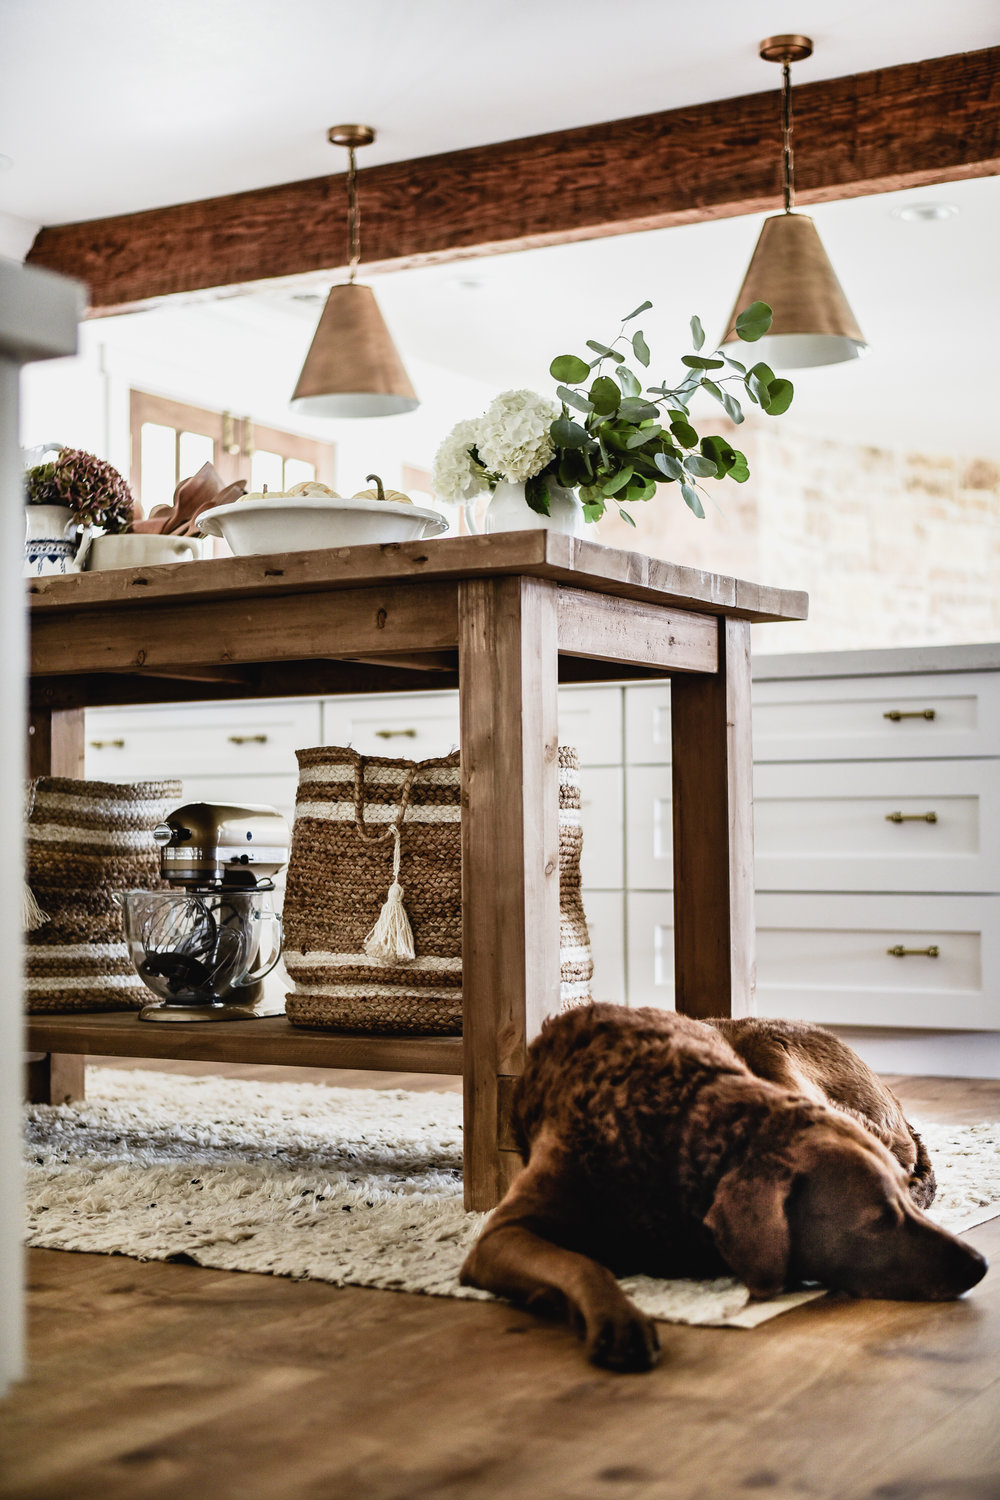 Favorite farmhouse interiors shops - A list of some of my favorite sources for buying modern farmhouse decor. With links to lighting, rugs, and flooring too!